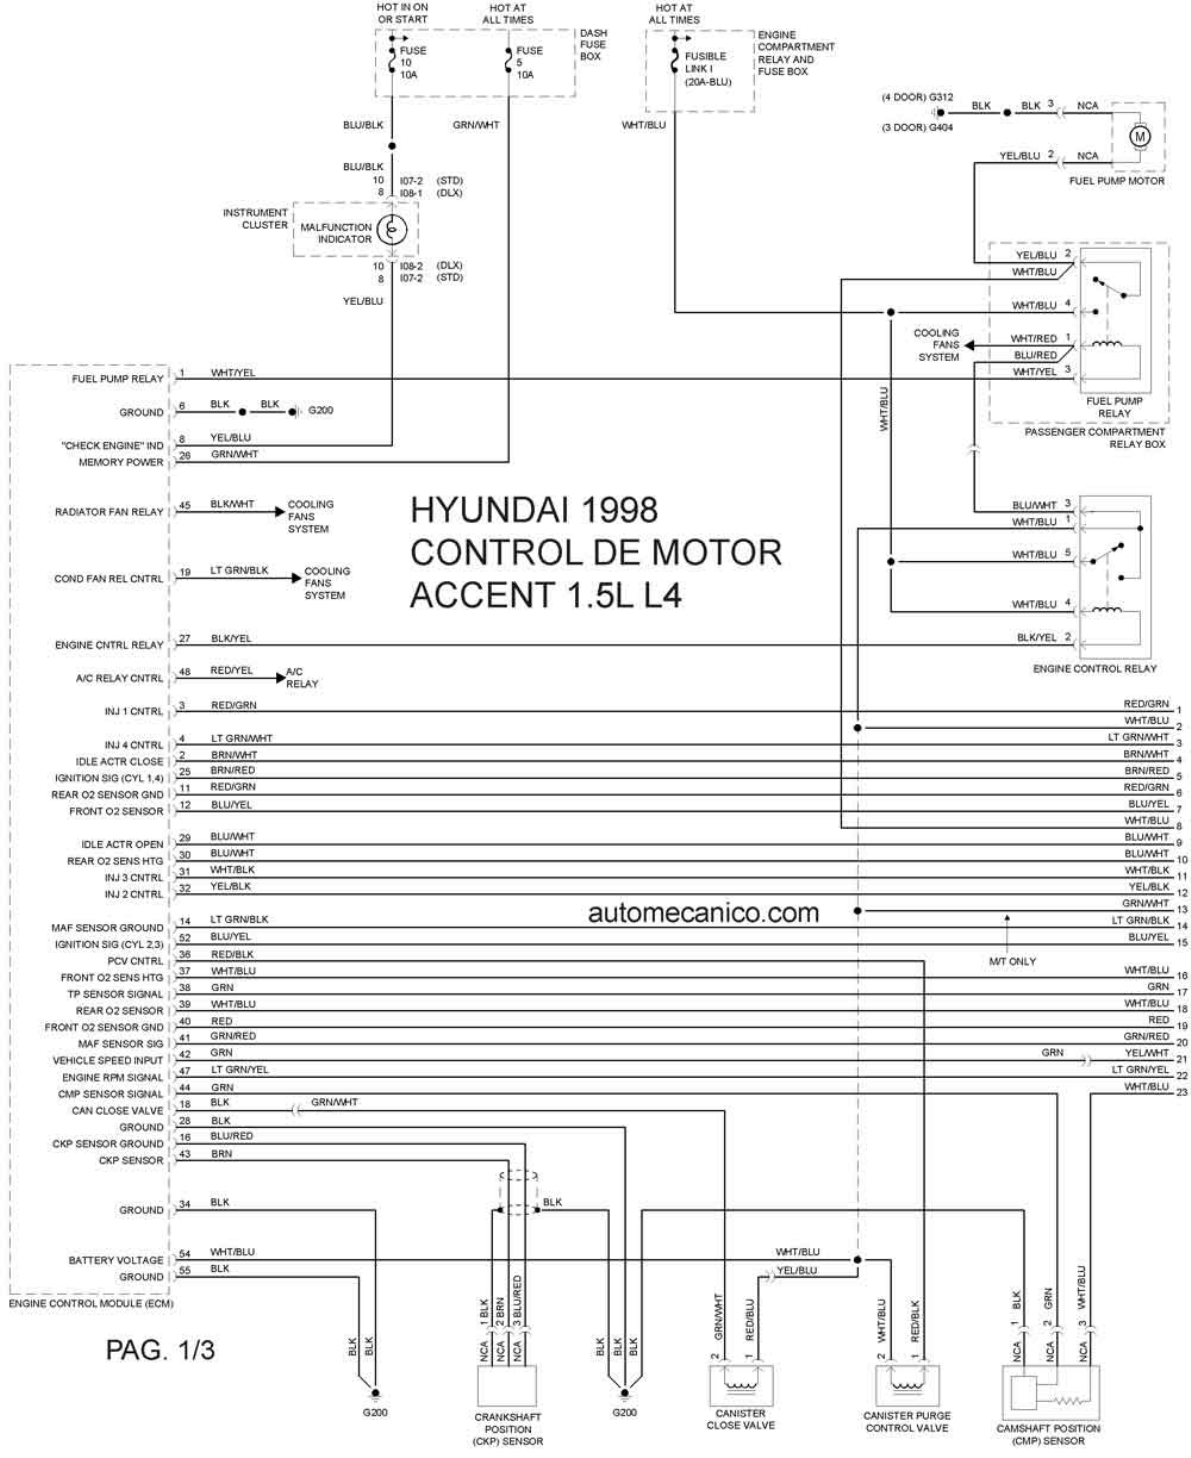 Hyundai accent misc document wiring diagram pdf